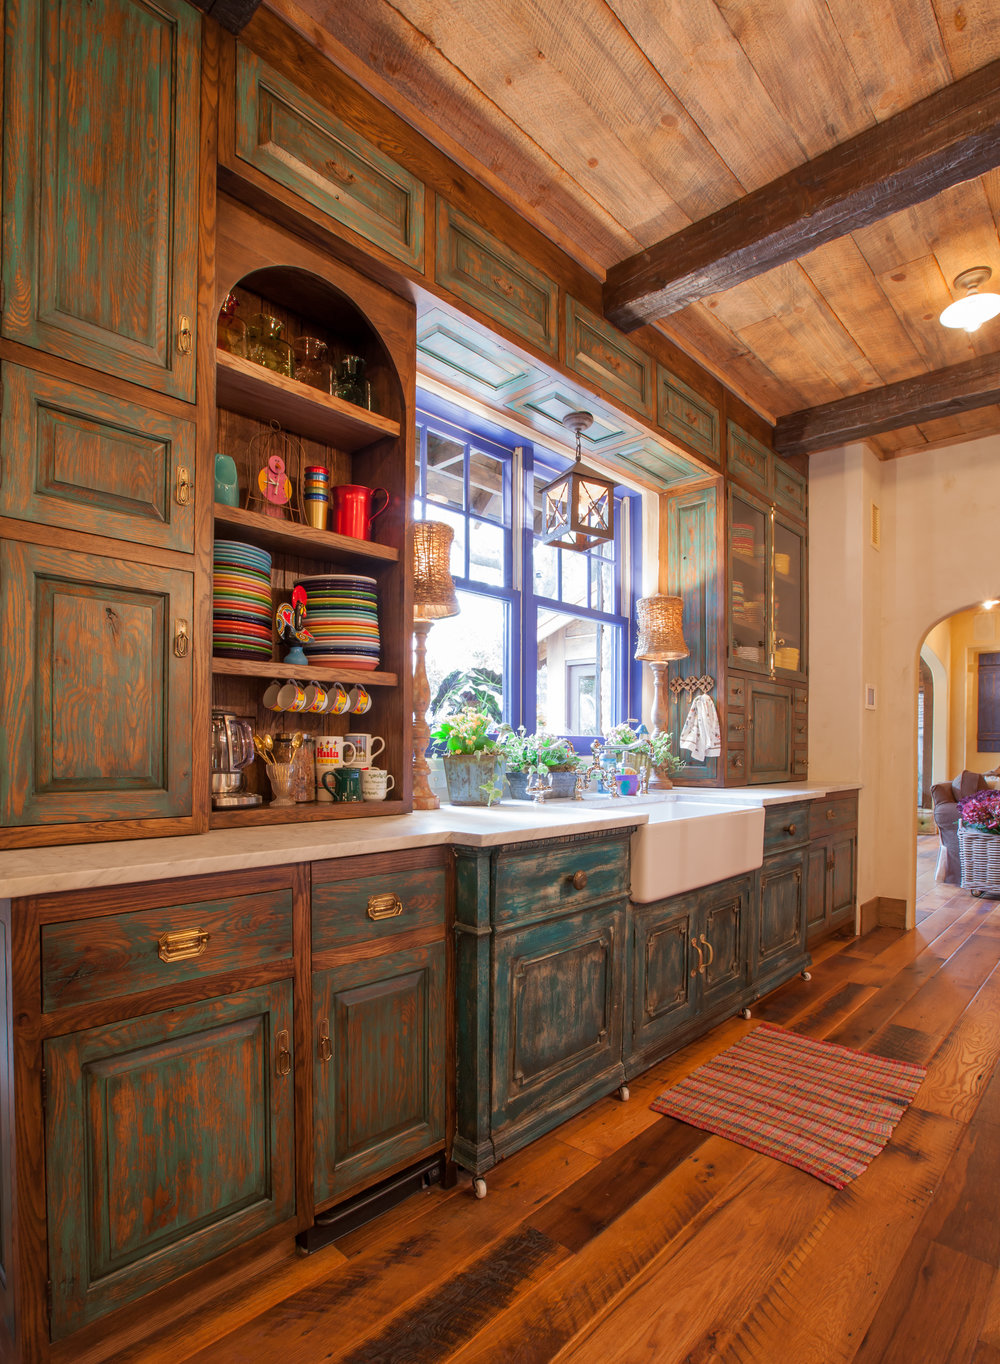 CARUTH- Kitchen cabinets.jpg